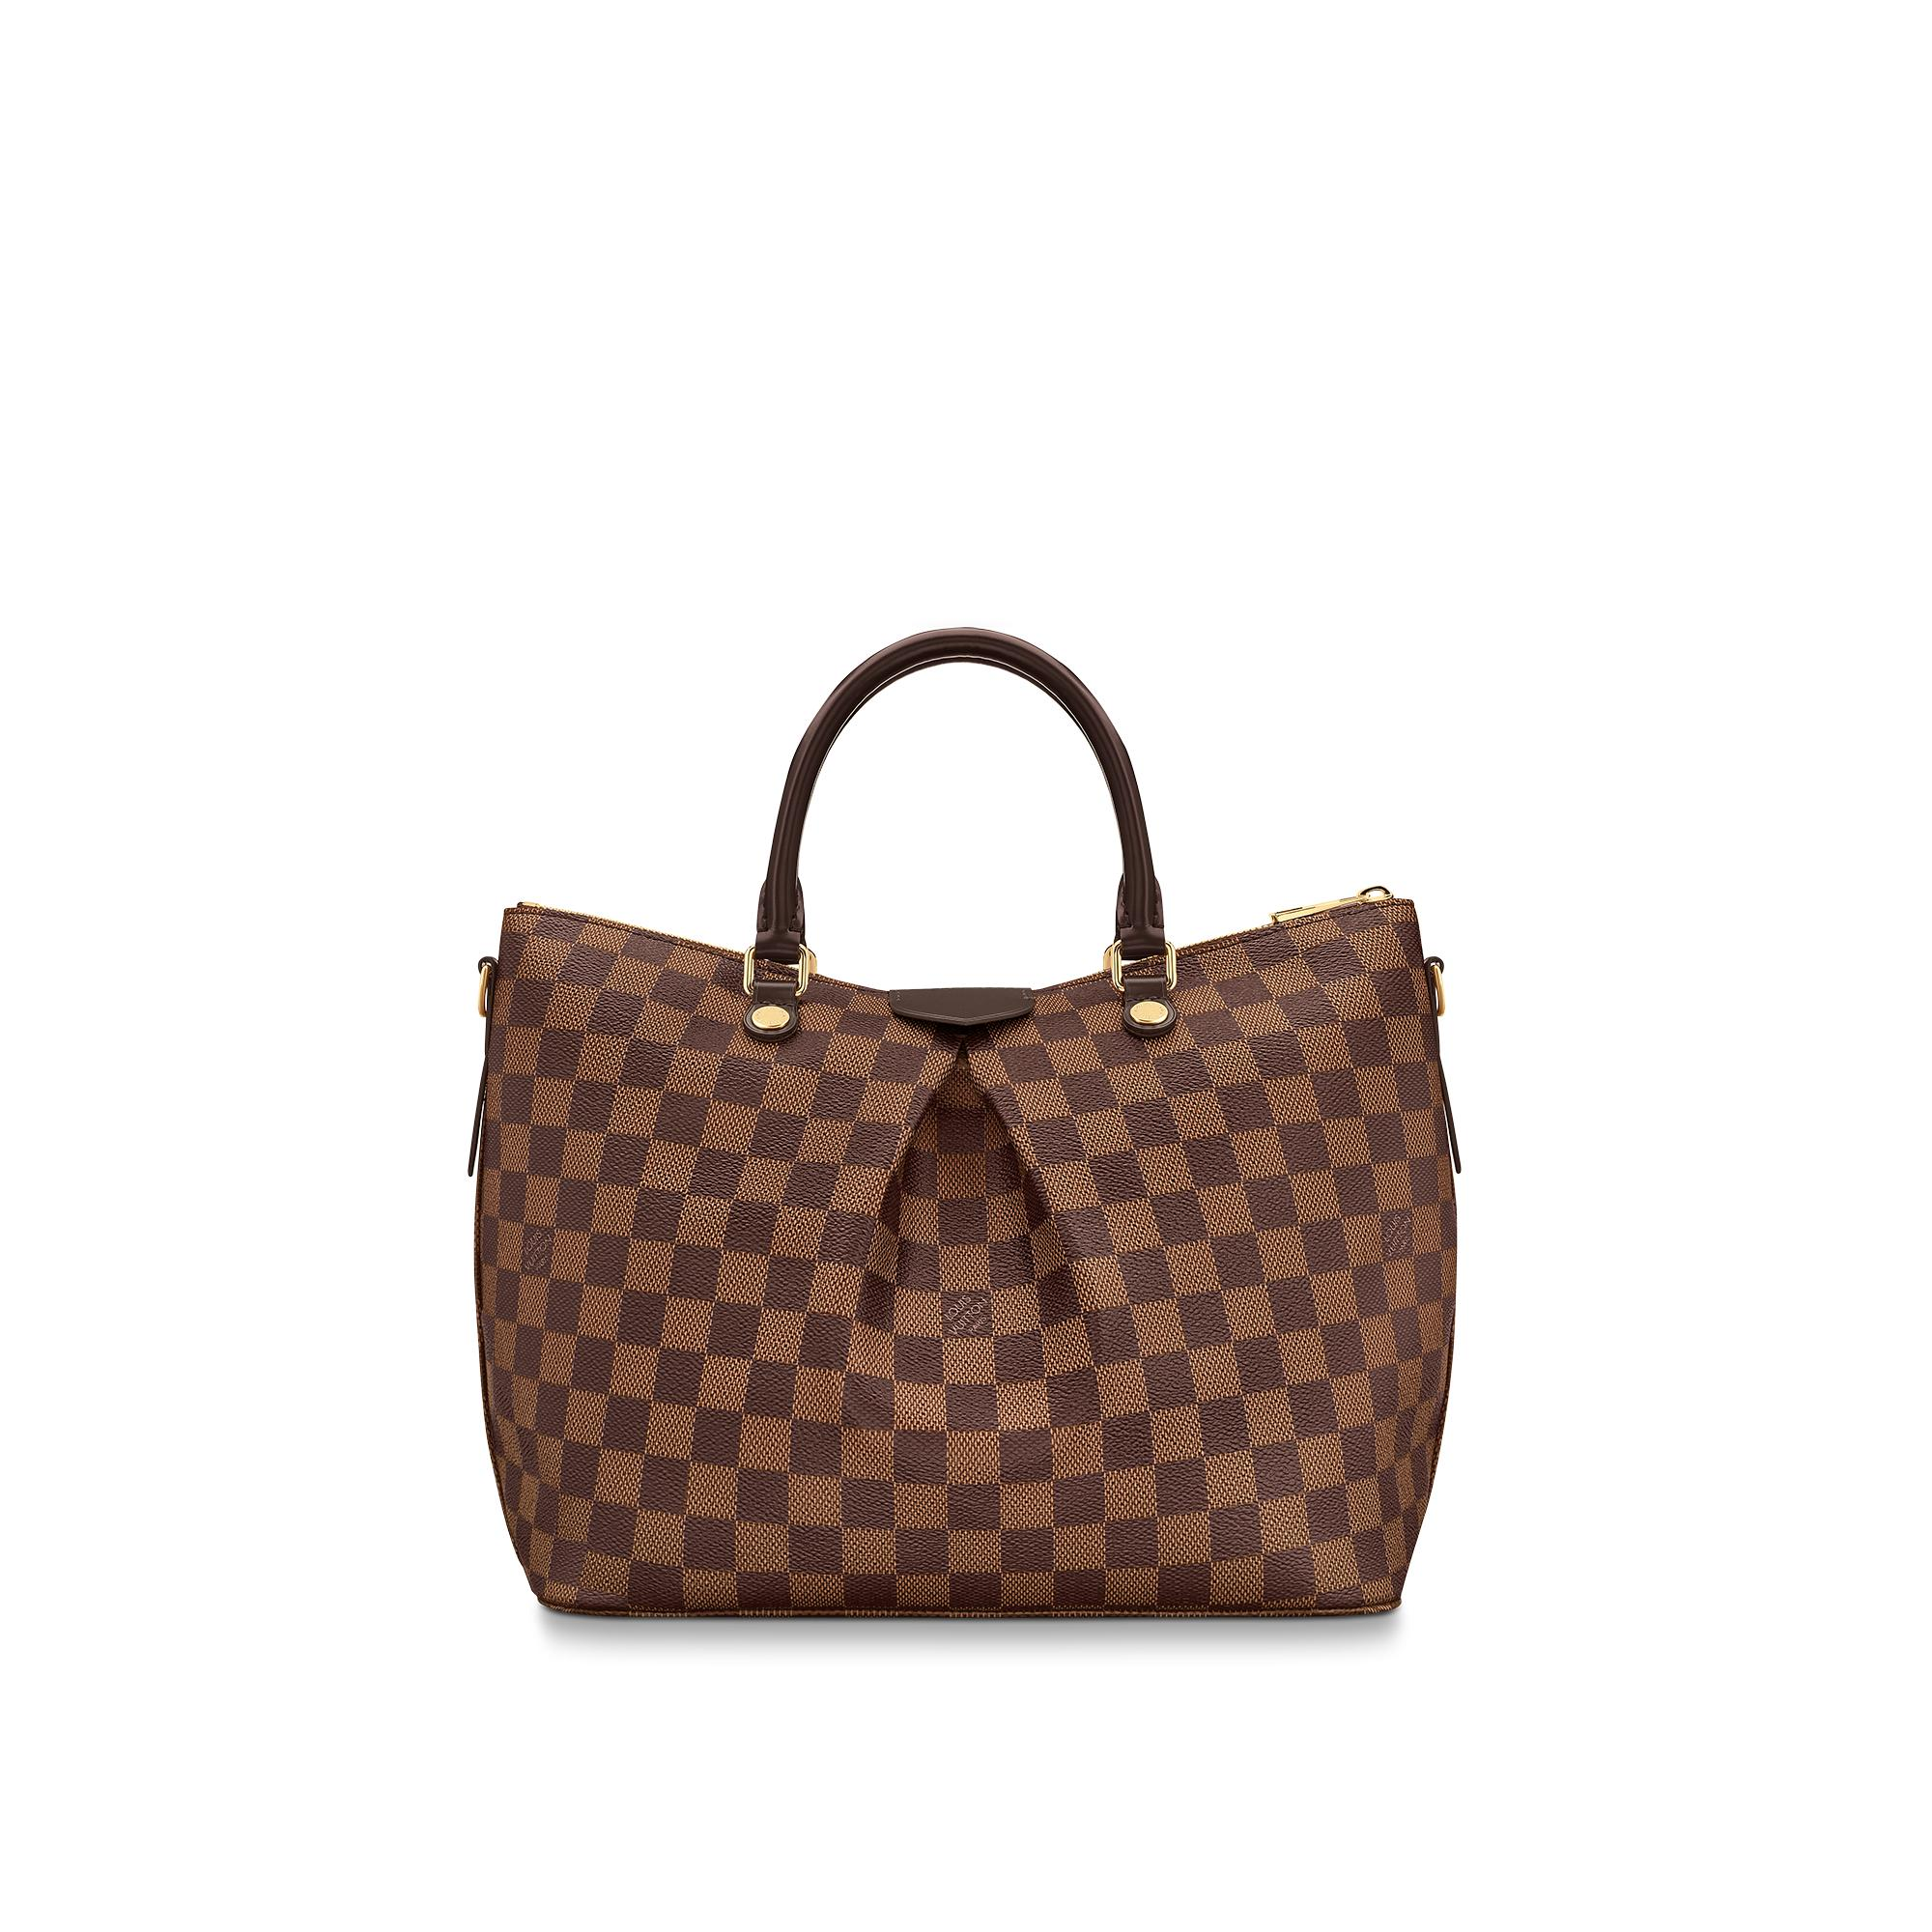 Louis Vuitton Tivoli Vs Palermo Siena Mm Damier Ebene Canvas Handbags Louis Vuitton